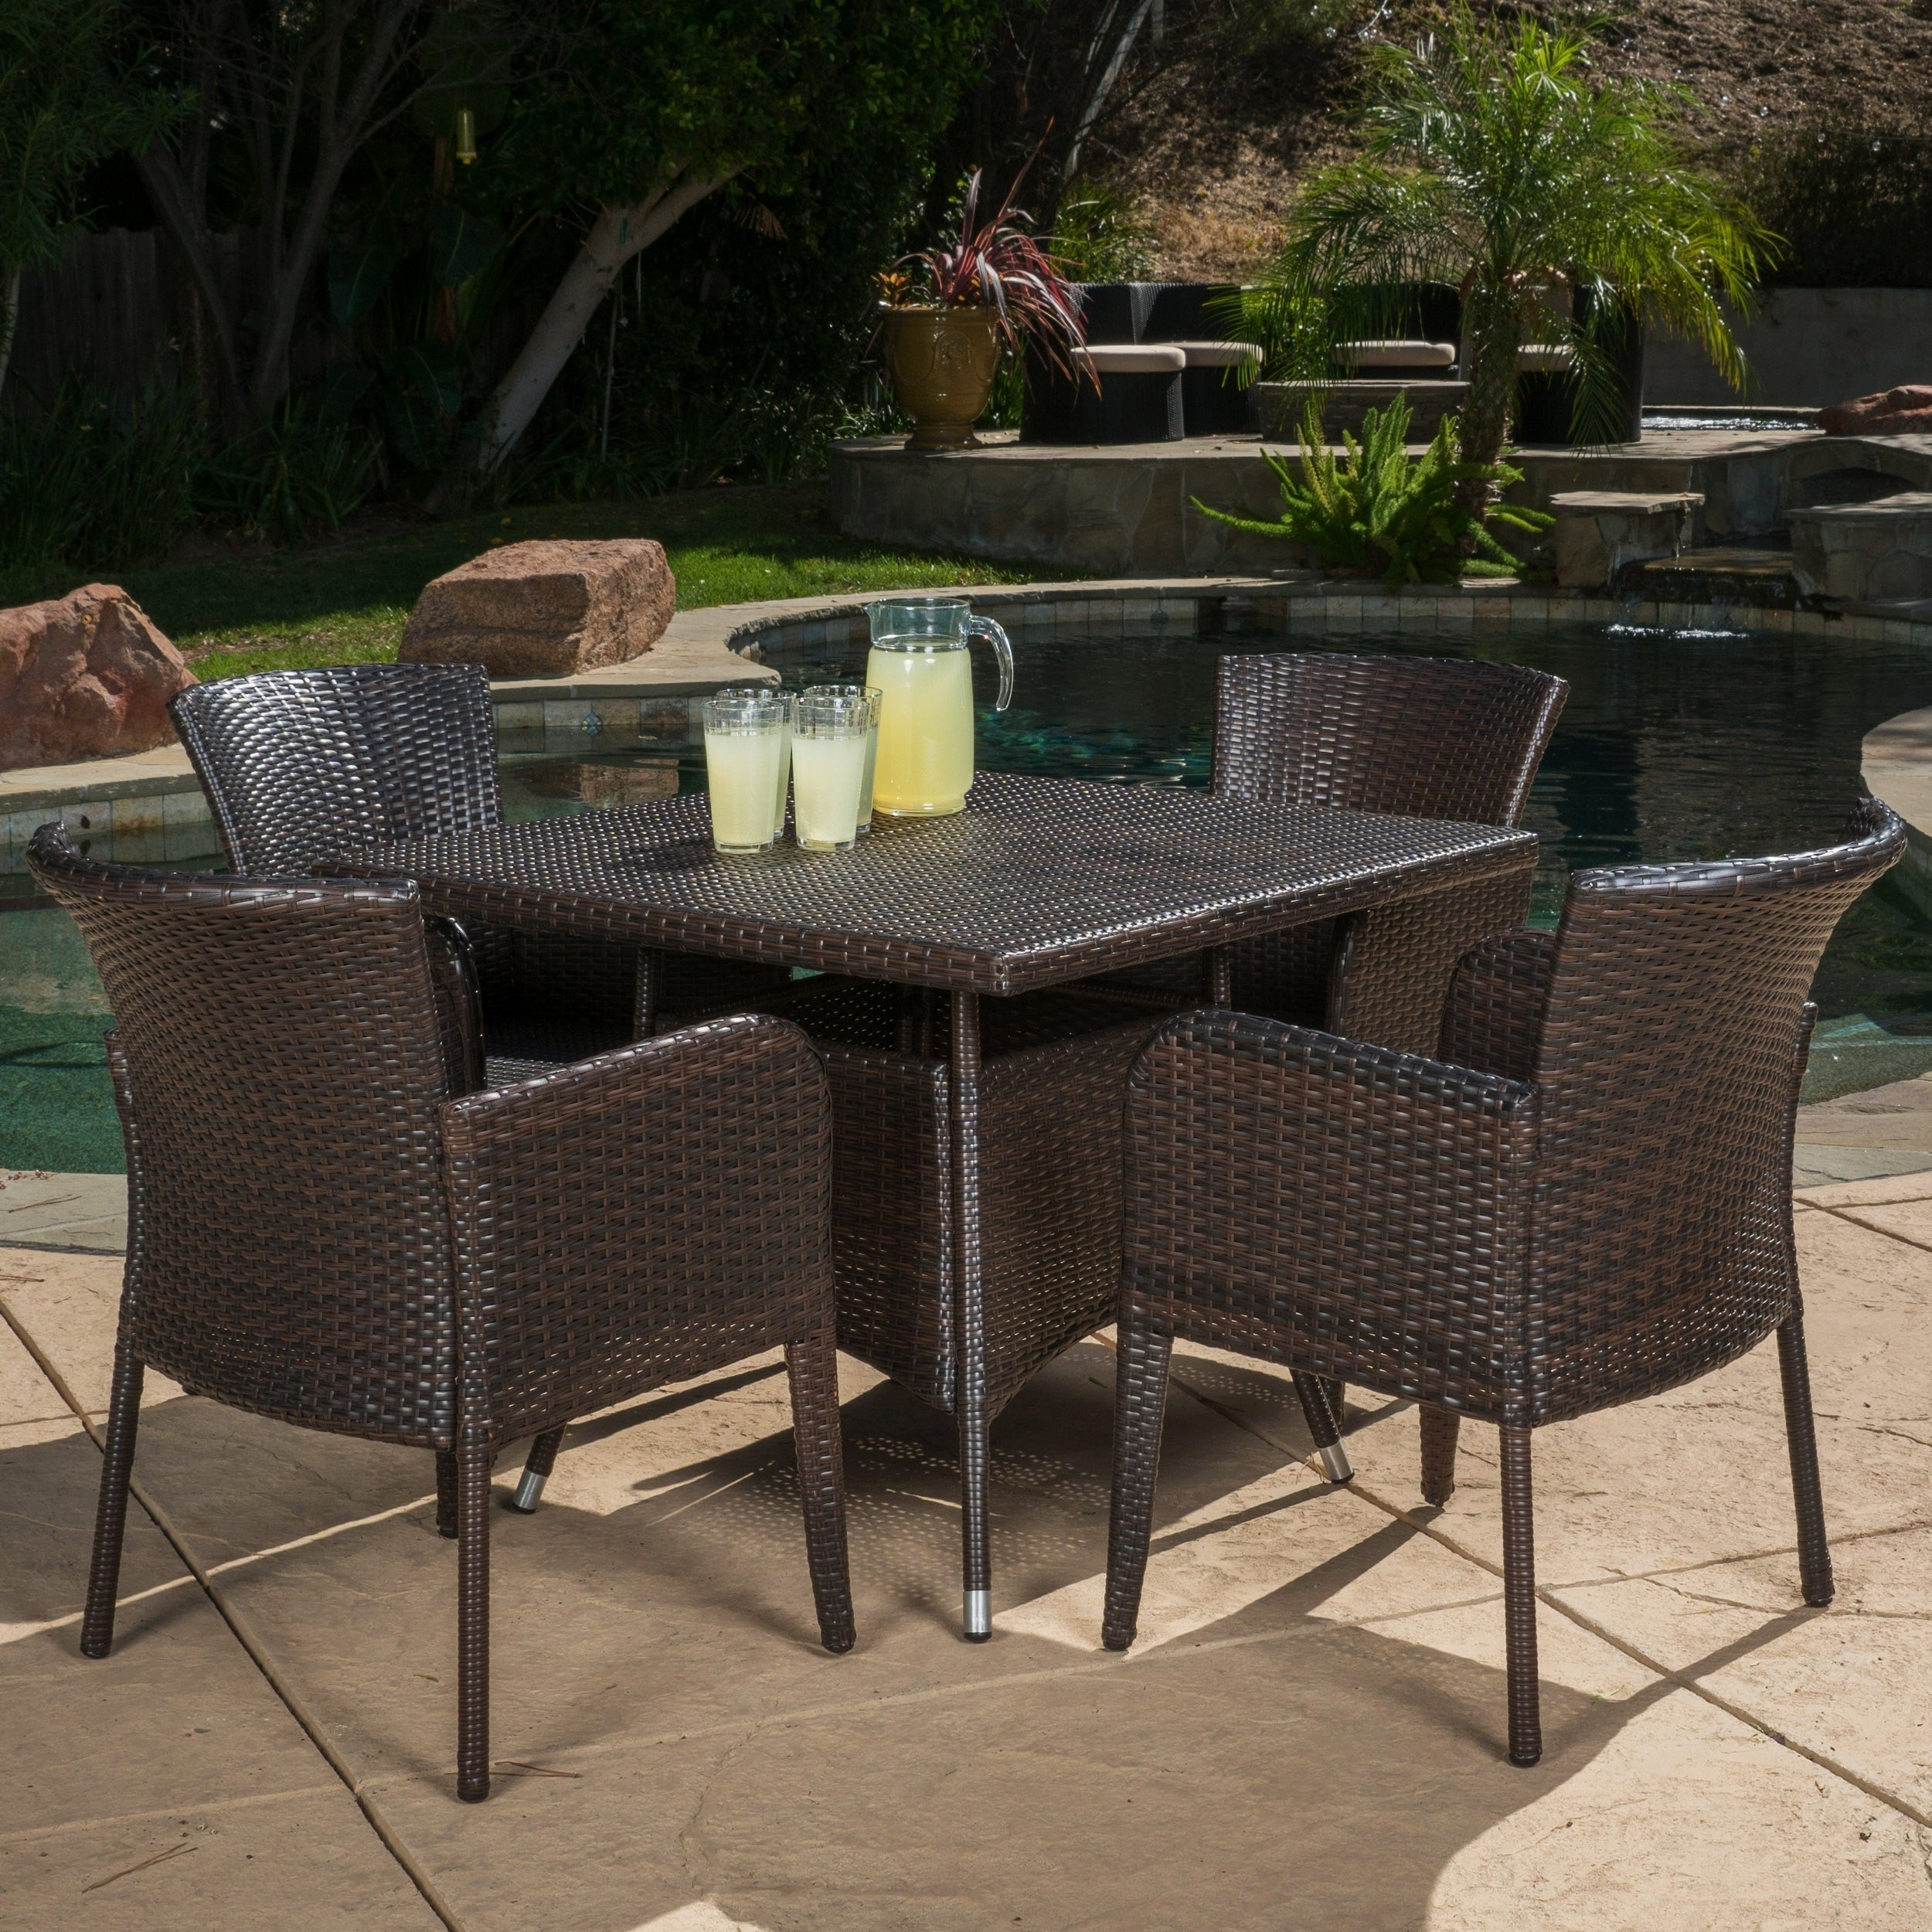 Christopher Knight Home Corsica Outdoor 5 Piece Wicker Dining Set